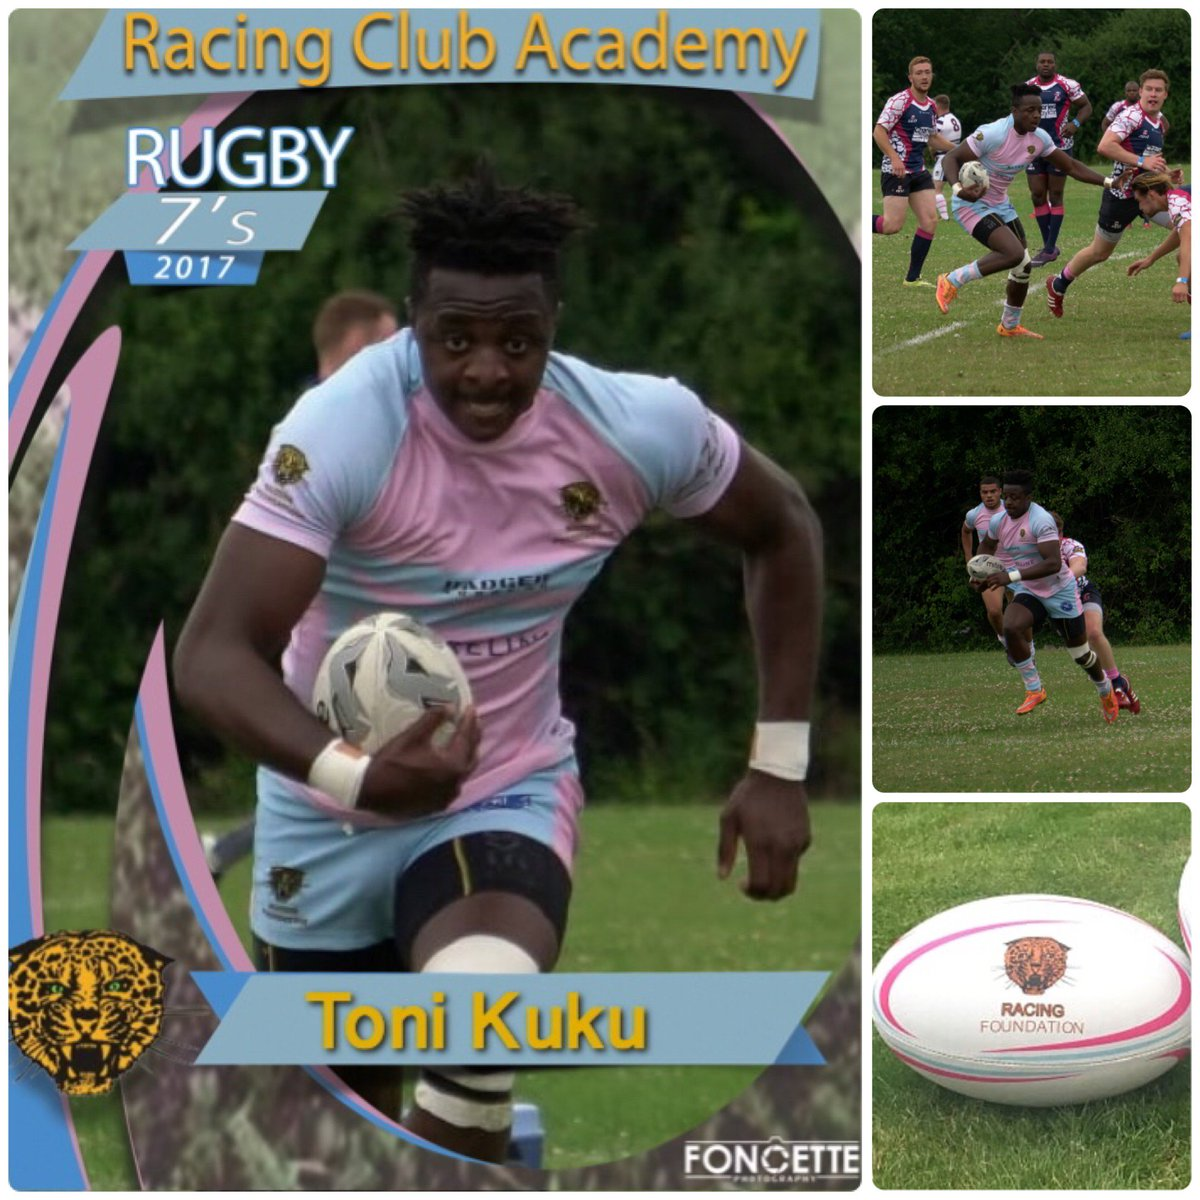 HBD TODAY to ex Wasps Acad. star @T_Kuku1 from all @Racing_7s .  #racingfoundation #rugbysevens #rugby #rugby7s #rugbyfamily  #signhimup<br>http://pic.twitter.com/wWPmJGolba